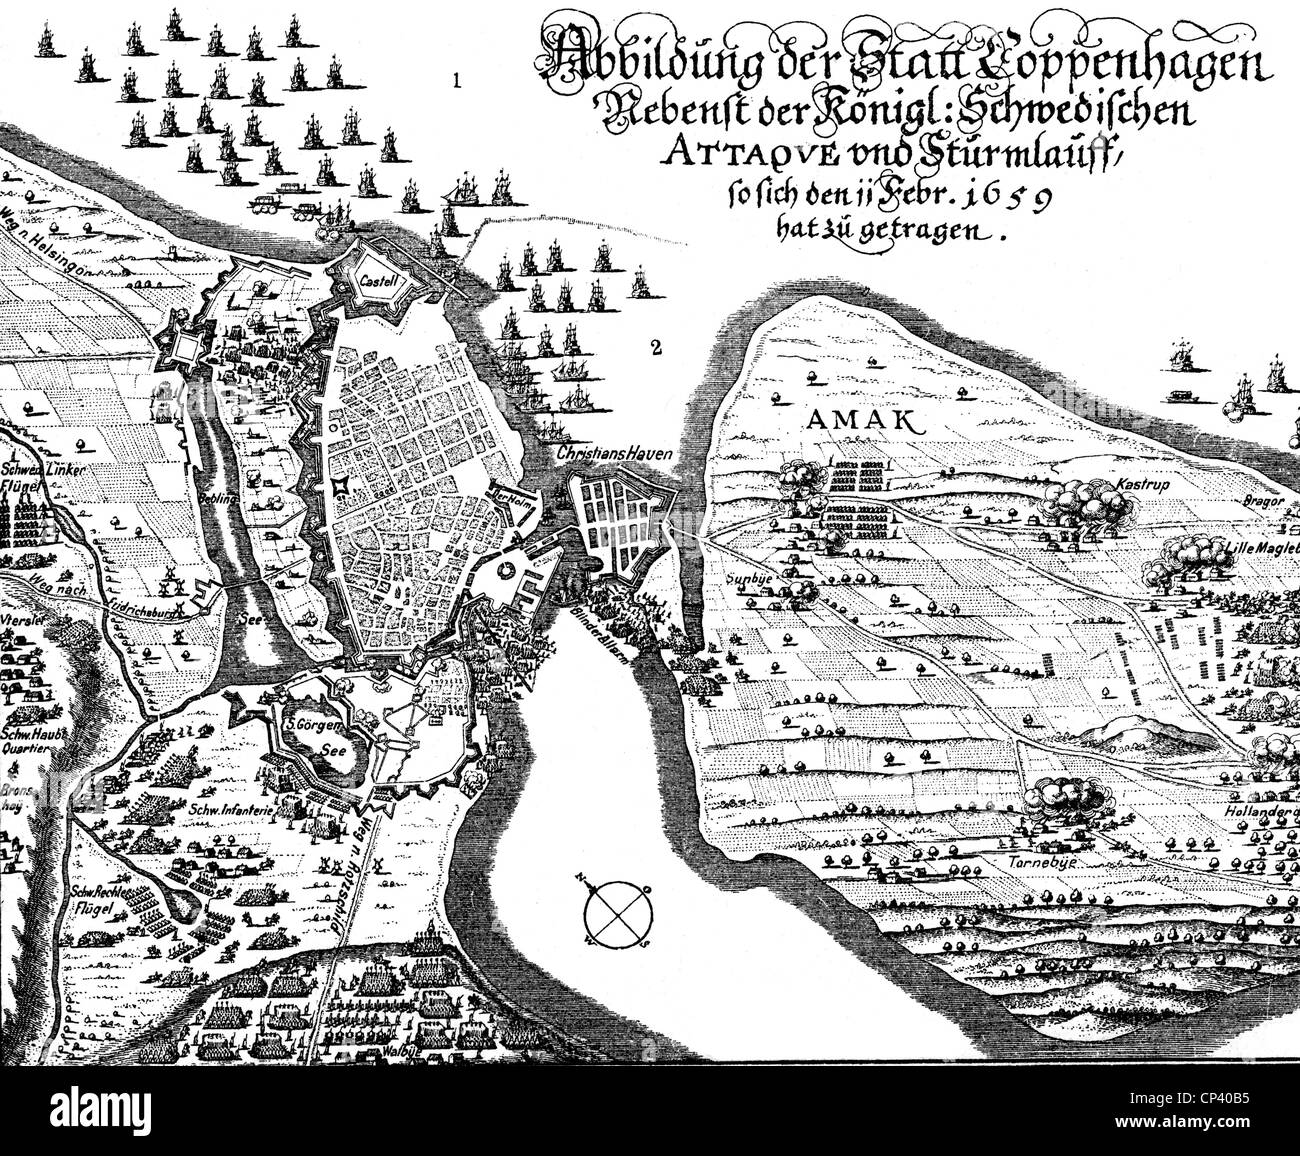 events, Second Northern War 1655 - 1661, Siege of Copenhagen 1658 - 1659, attack of the Swedes 11.2.1659, map, contemporary - Stock Image